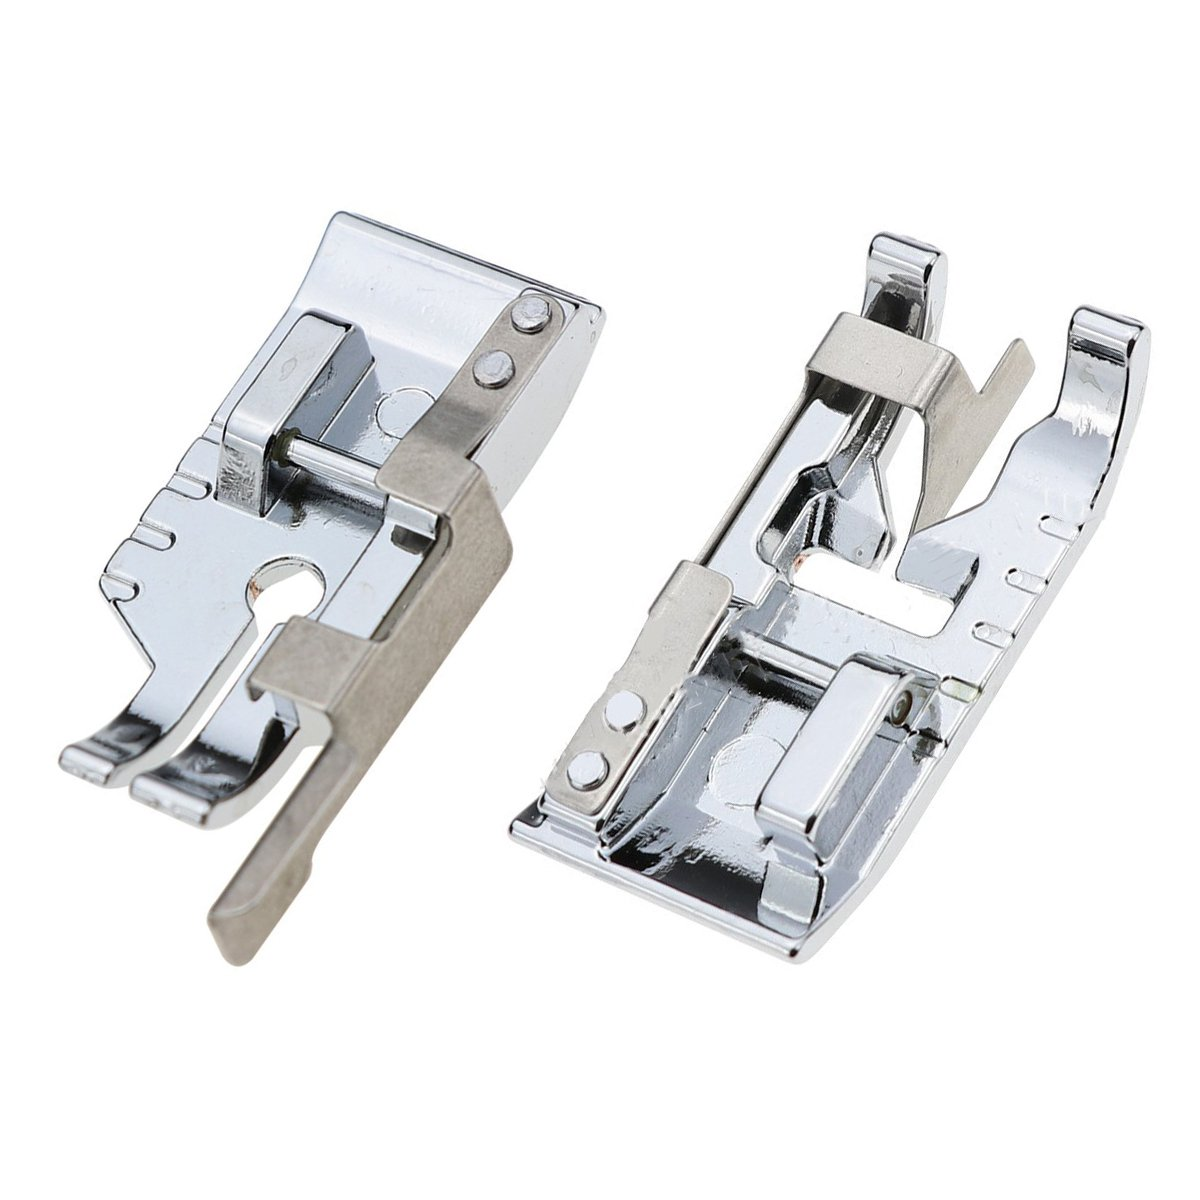 Pack of Stitch in Ditch Foot and 1/4''(Quarter Inch) Quilting Patchwork Sewing Machine Presser Foot with Edge Guide for All Low Shank Snap-On Singer, Brother, Babylock, Euro-Pro, Janome  Brother  Babylock  Euro-Pro  Janome